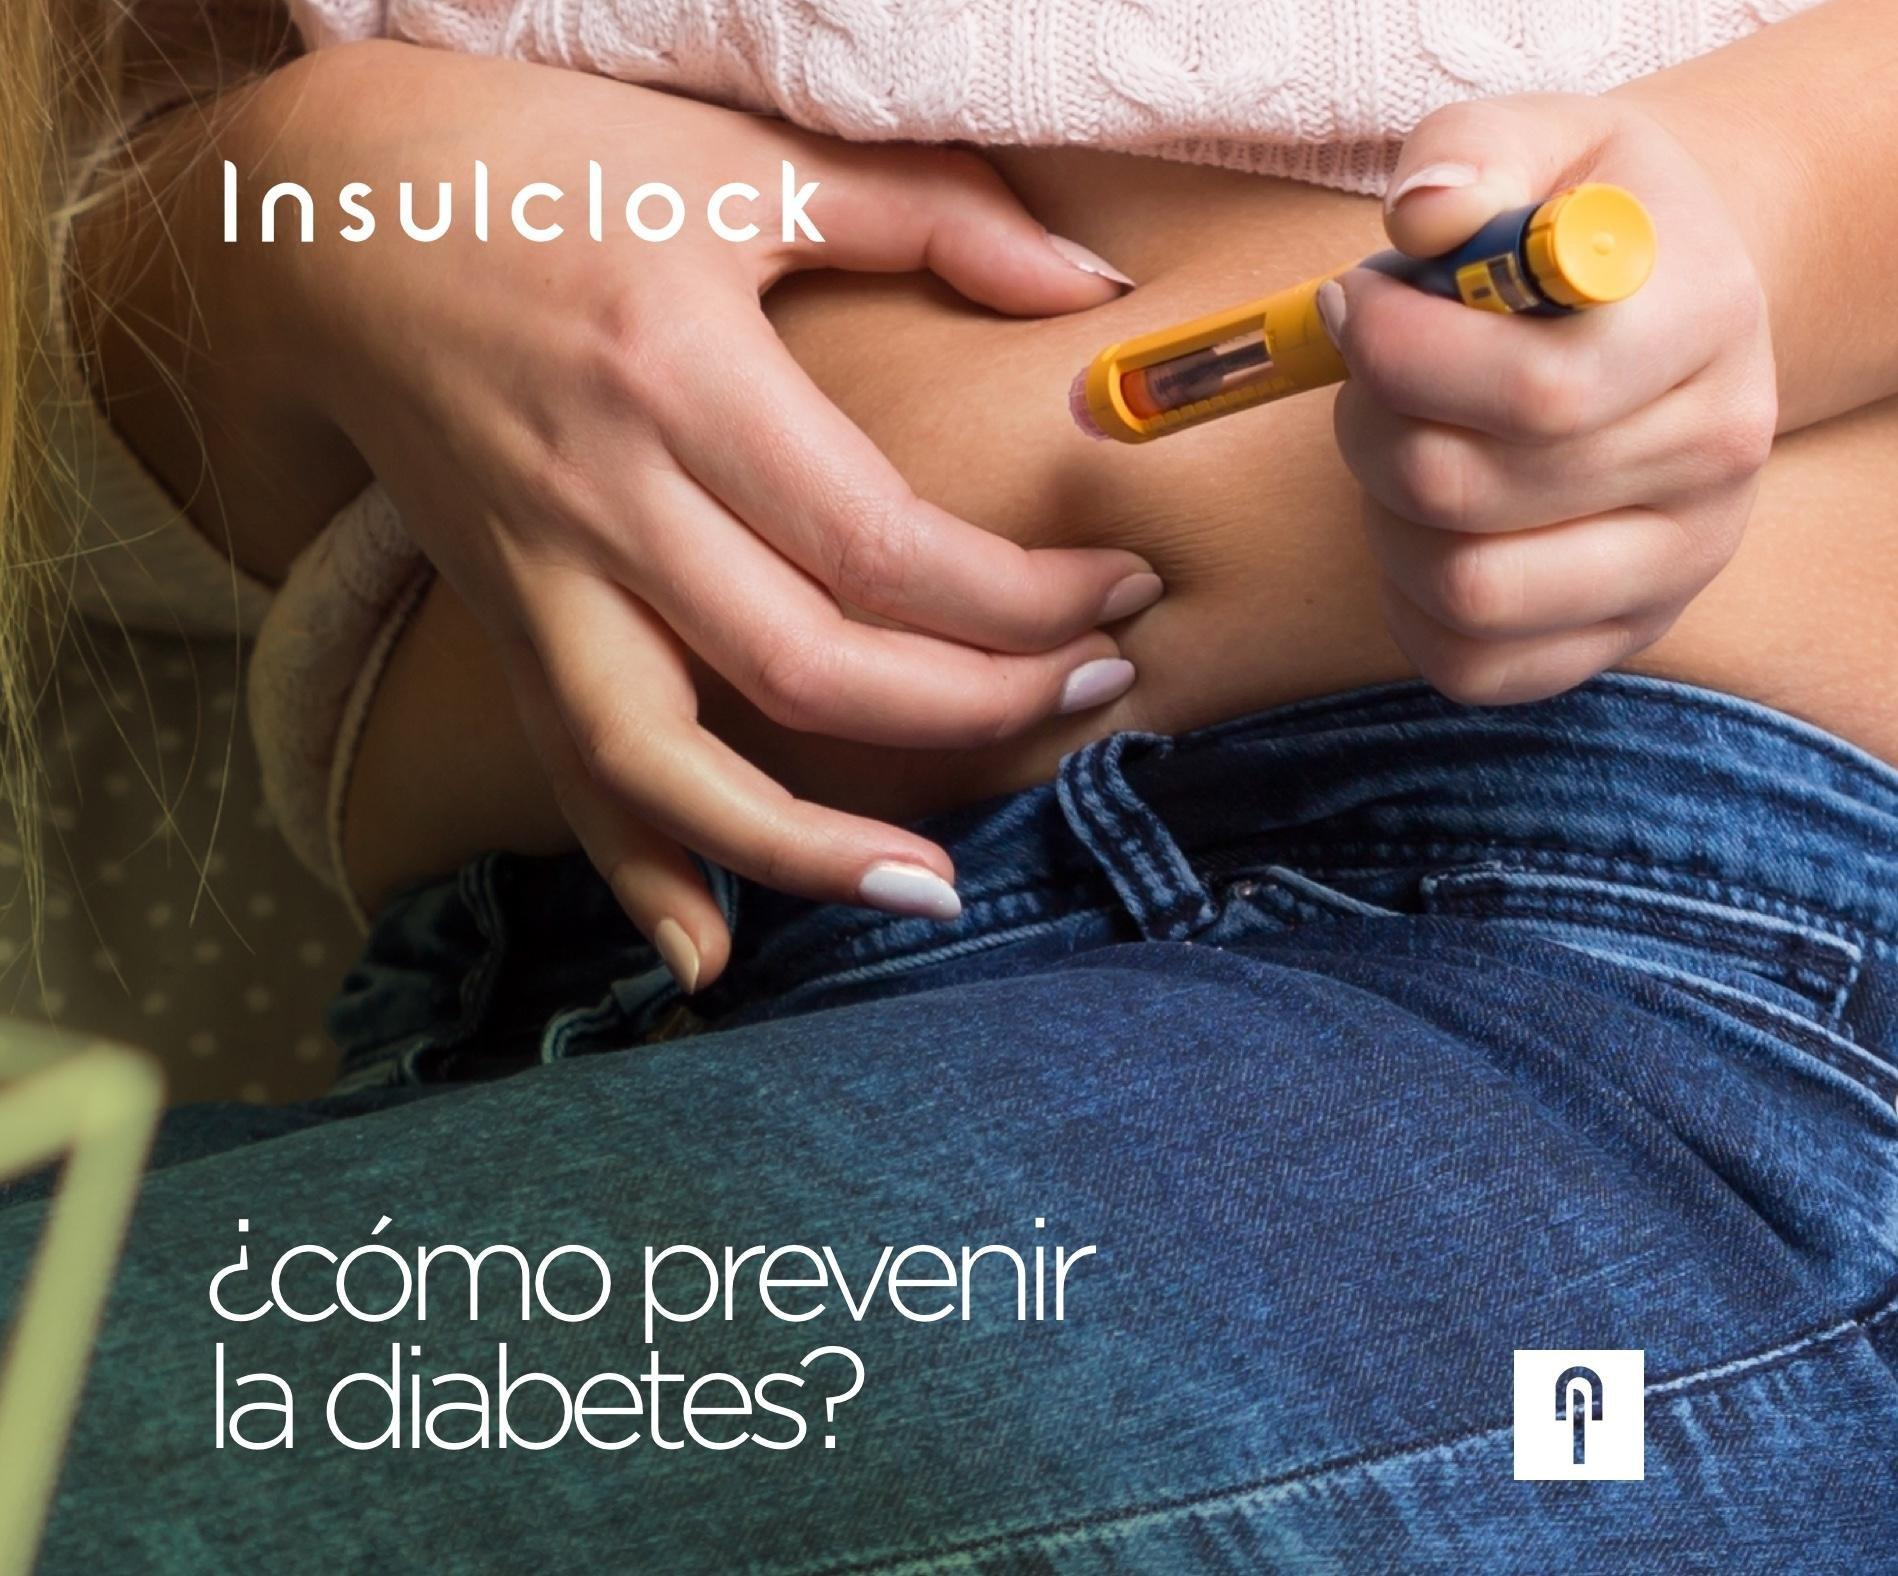 Can Diabetes Be Prevented